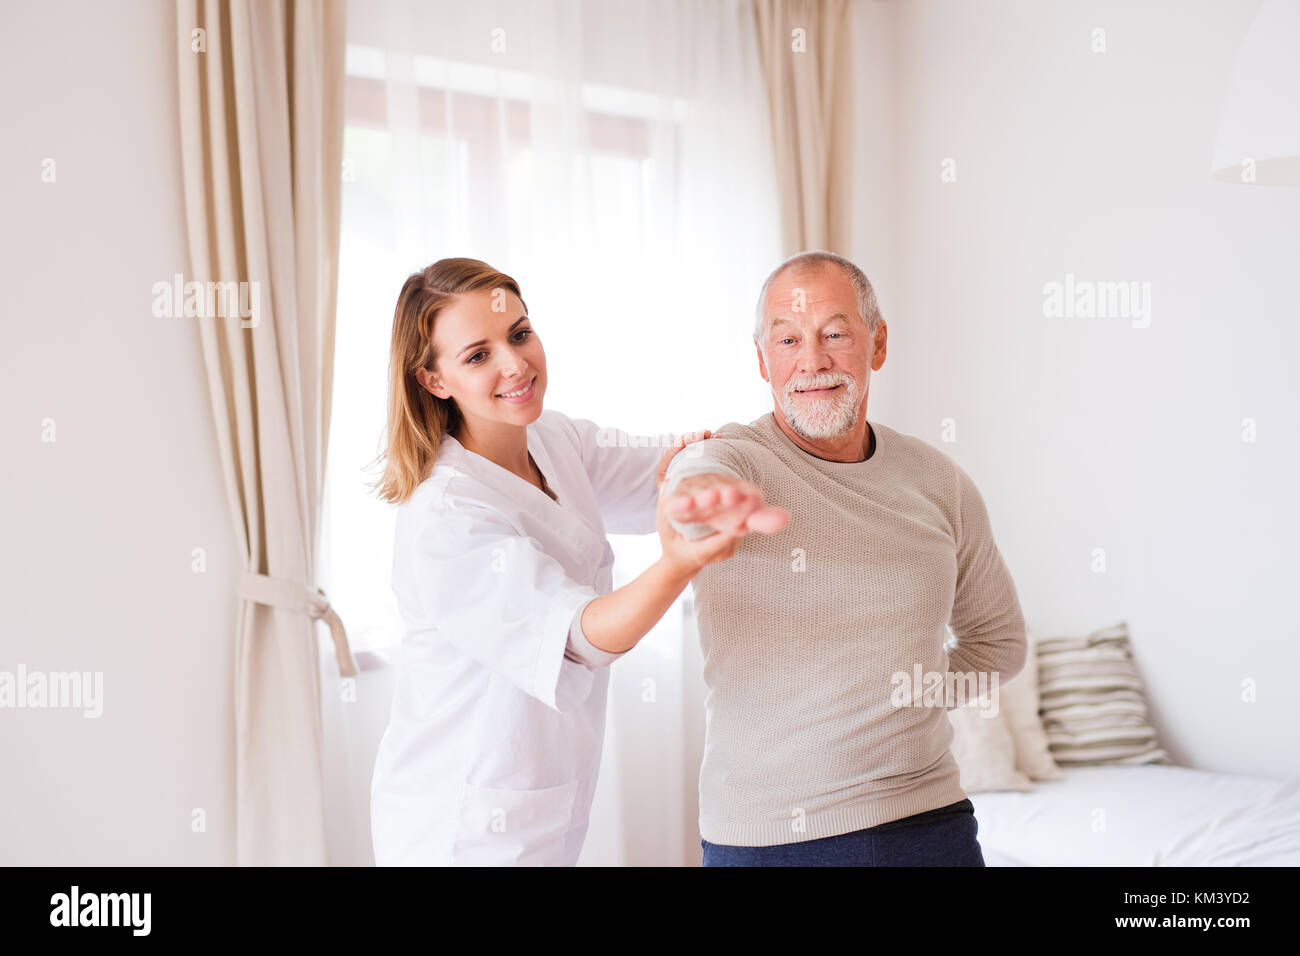 Health visitor and senior man during home visit. - Stock Image